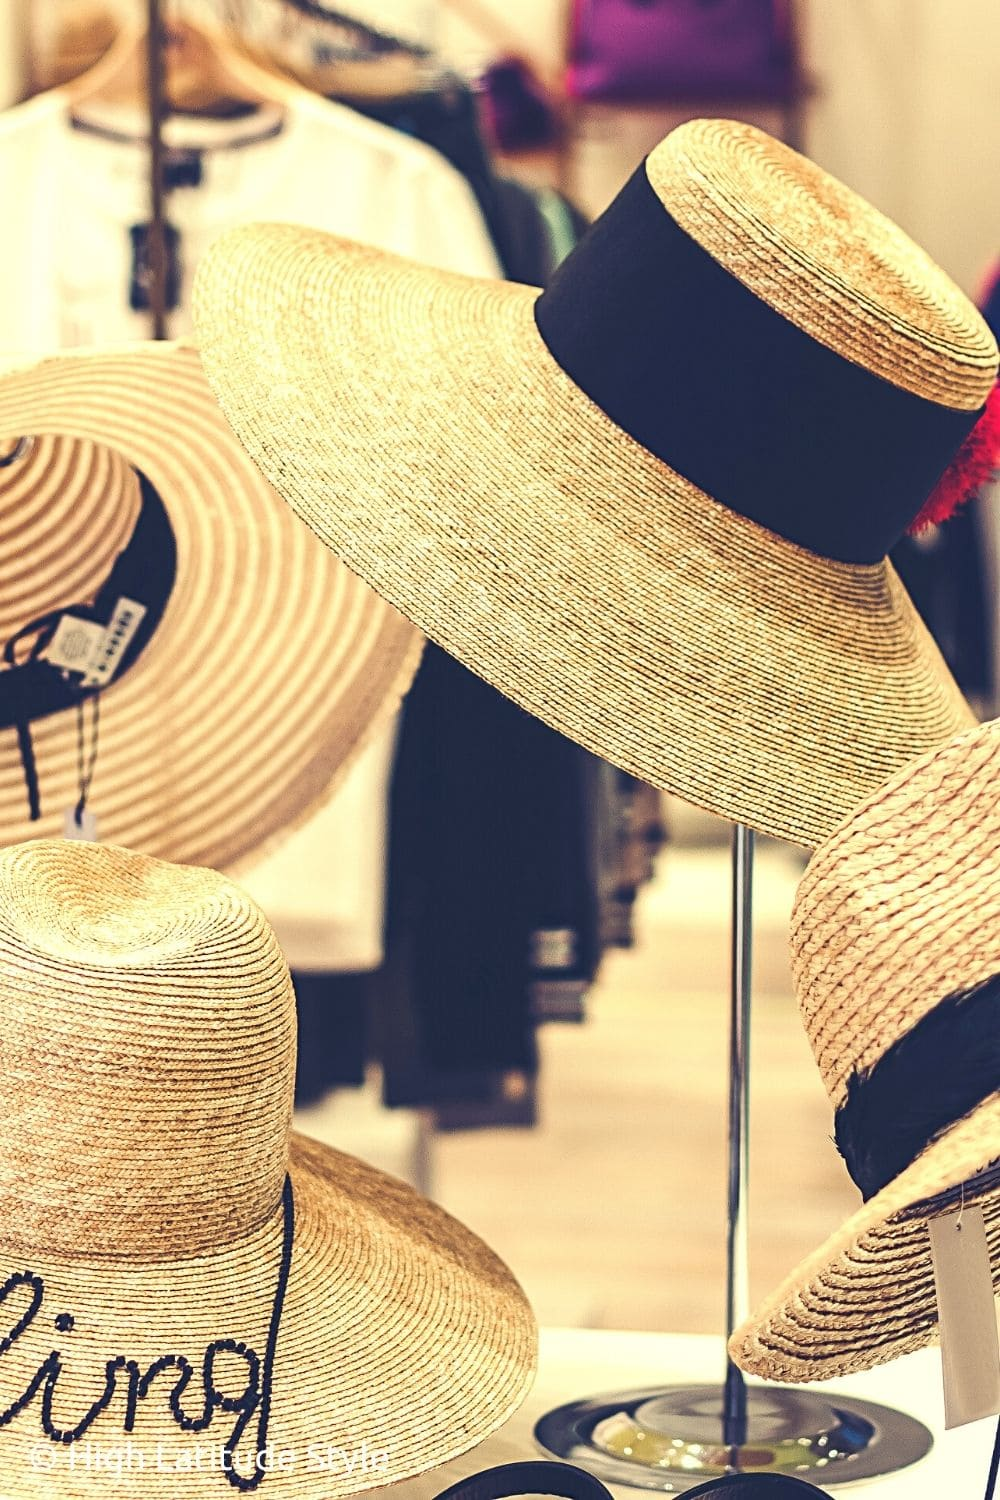 Learn about the Exciting History of Hats